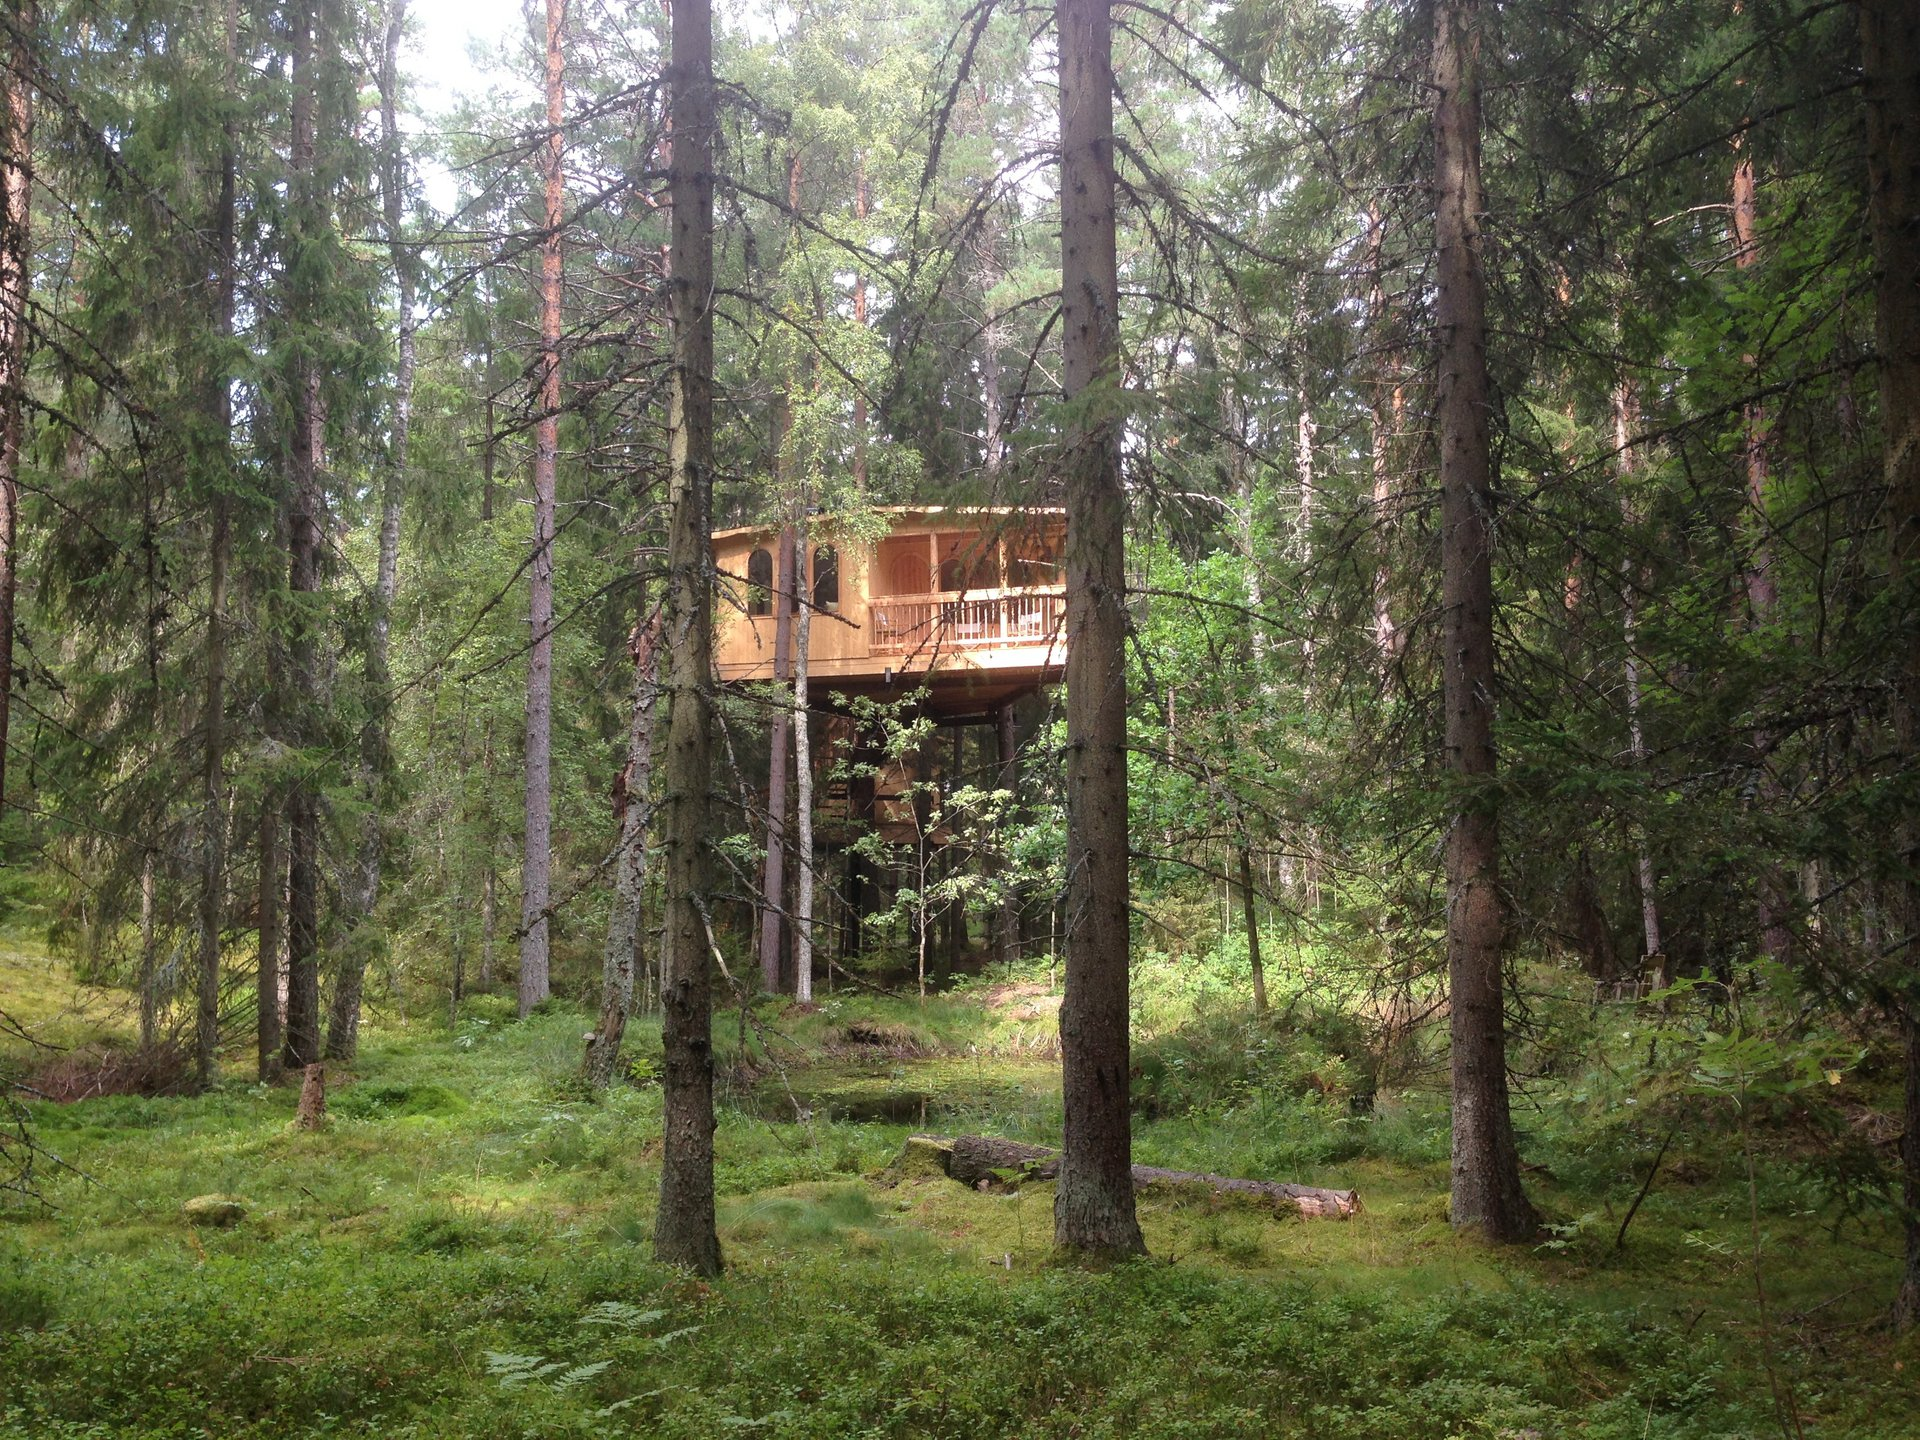 Tree House Hotel in Sweden 2019 - Best Time